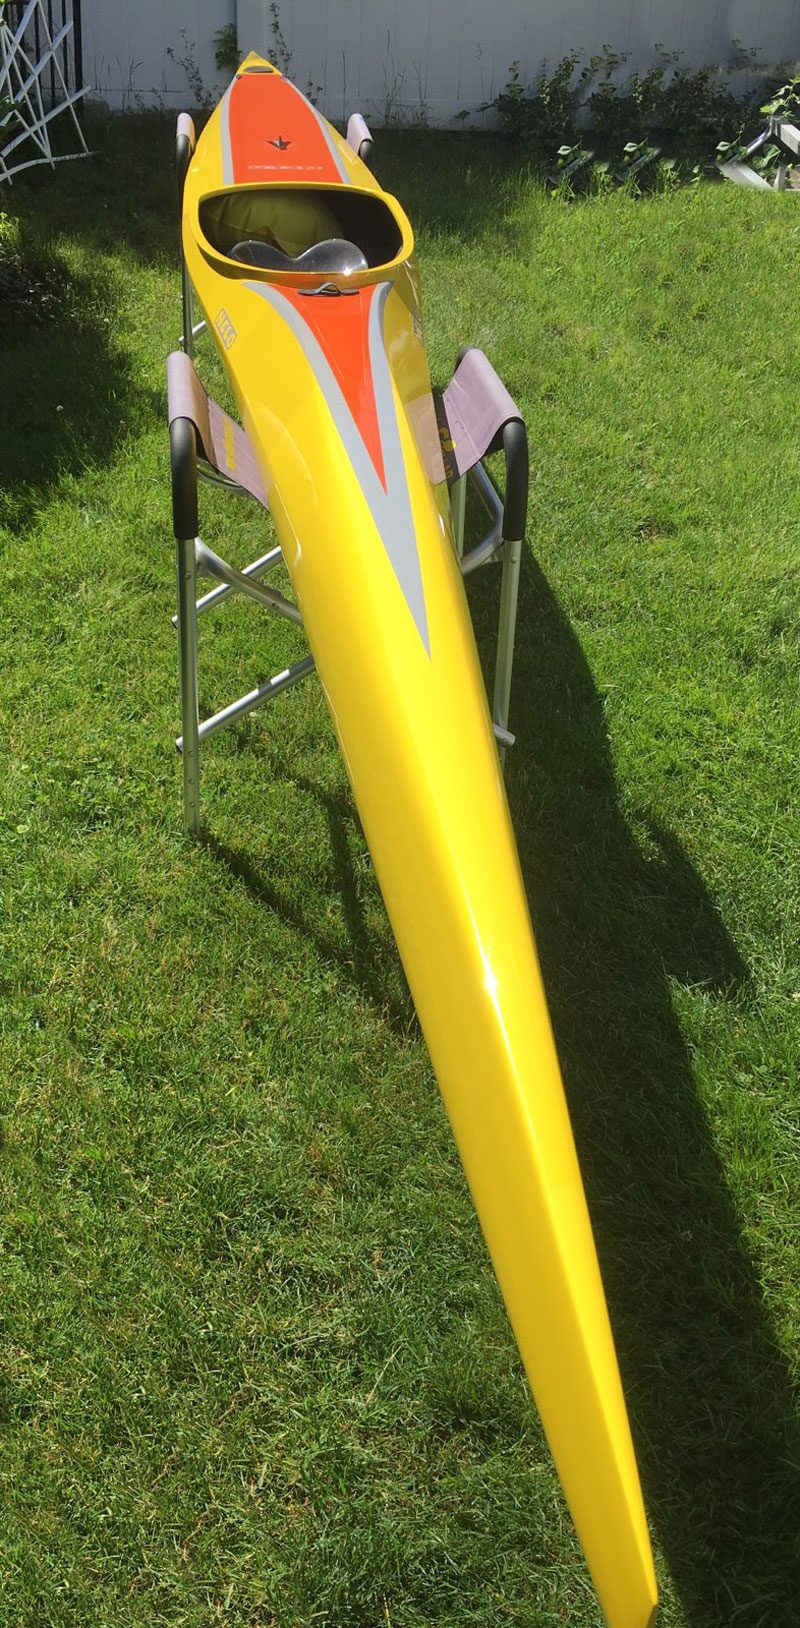 For sale- available now - Nelo Viper 46 K1 kayak